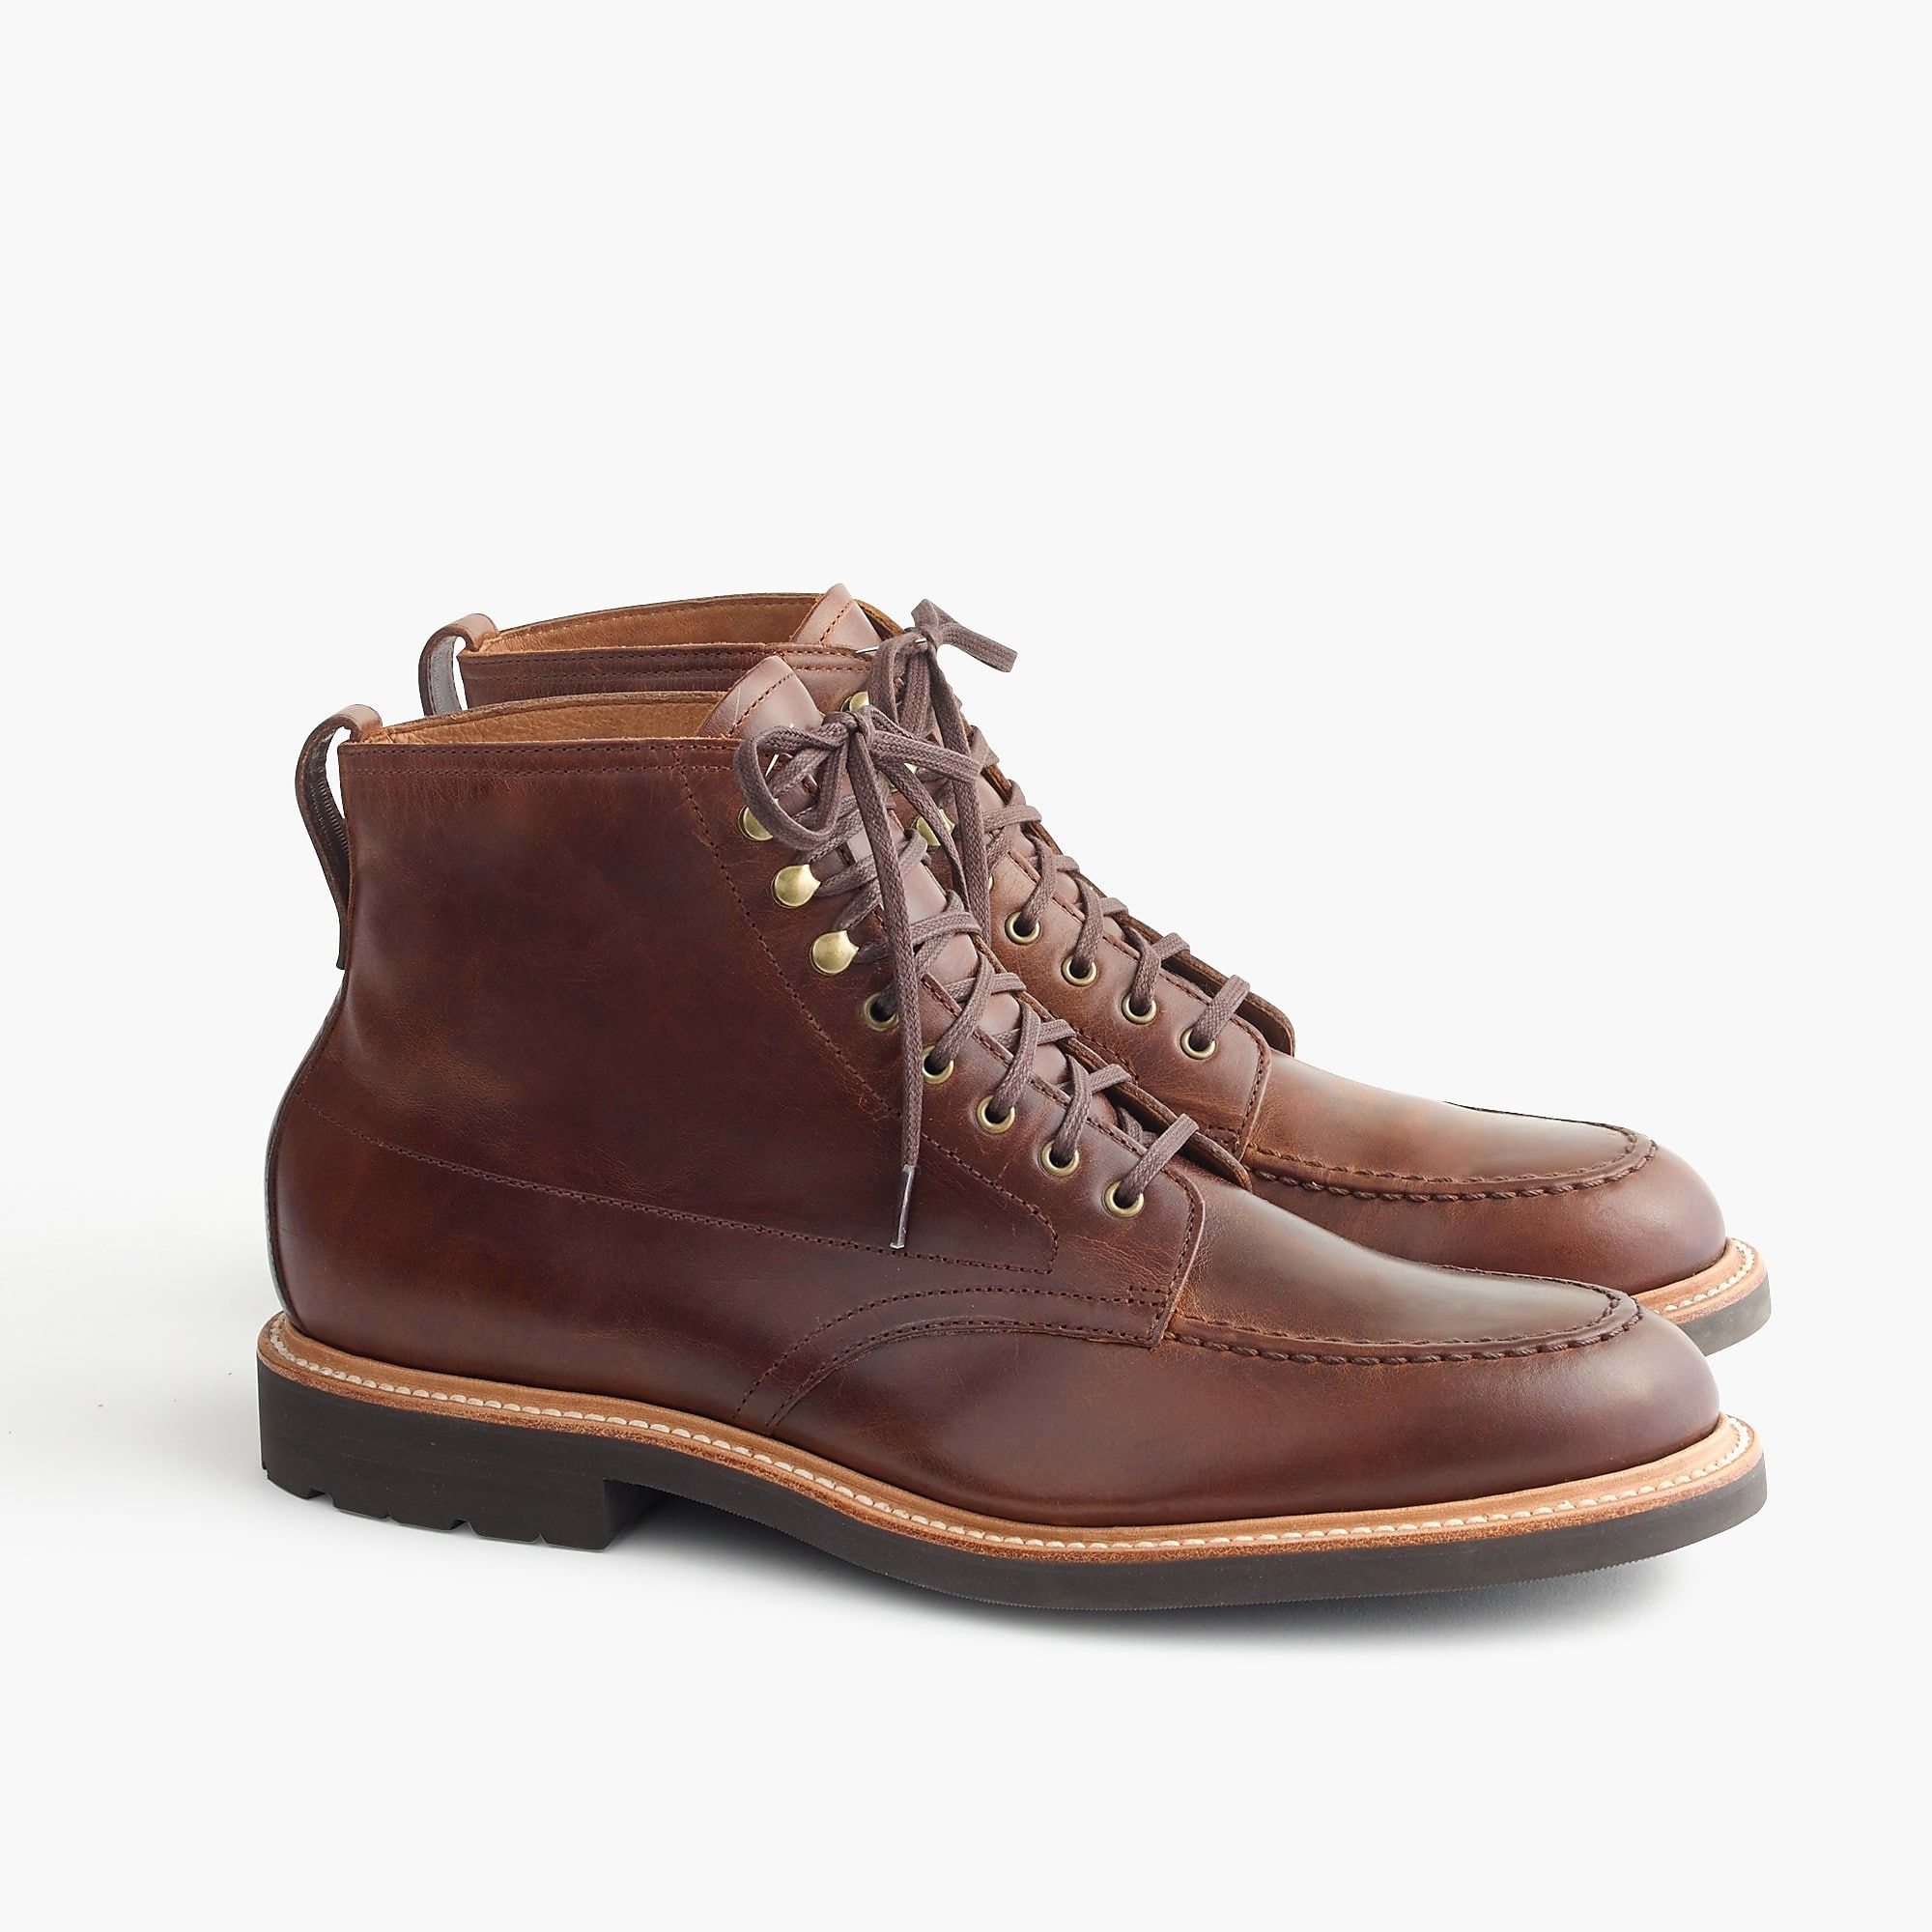 Shop the Kenton leather pacer boots at J.Crew and see the